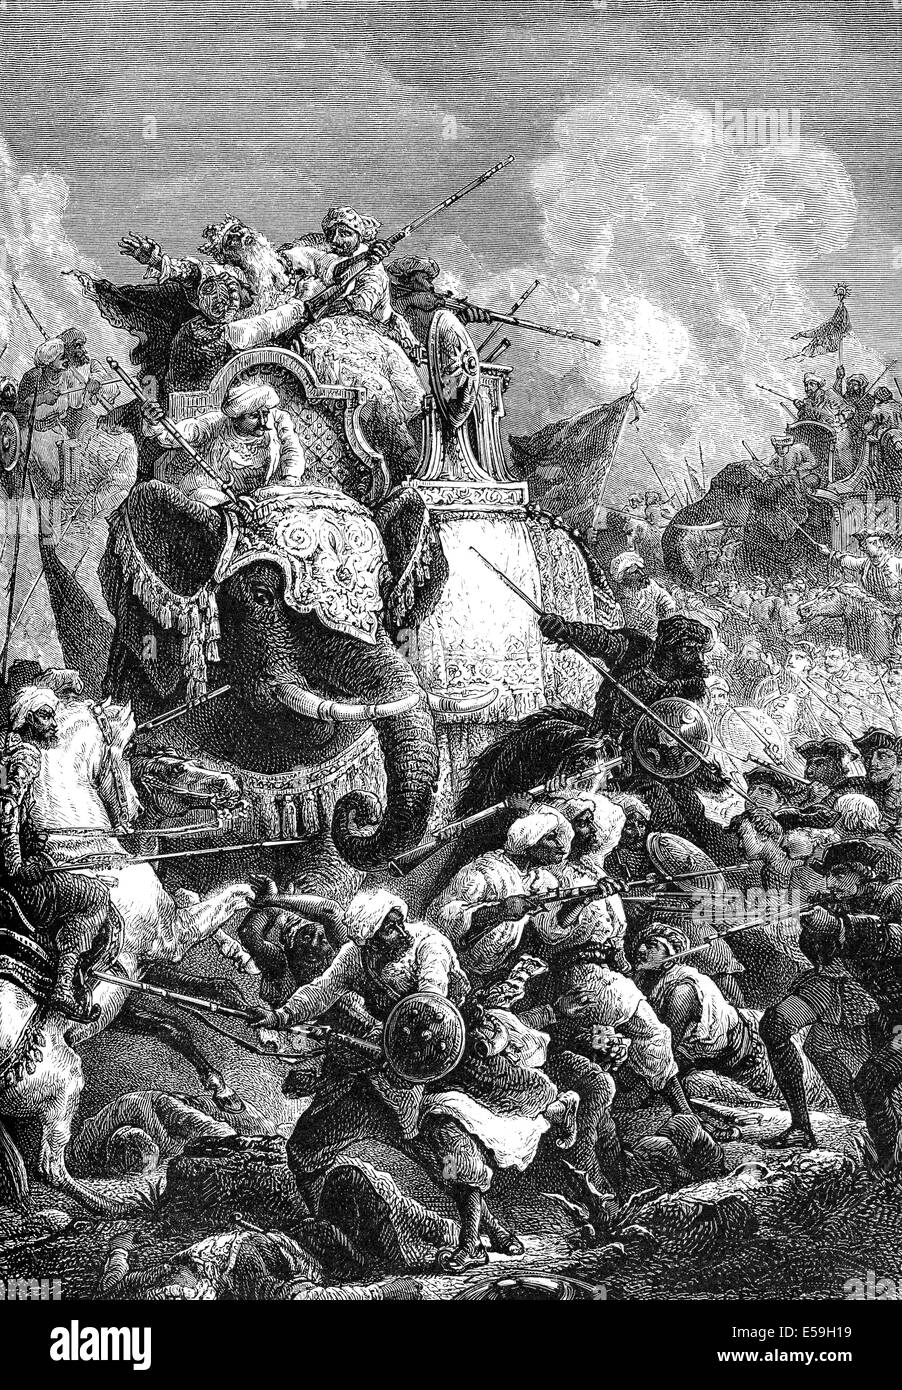 Death of the Nawab Anwaruddin Muhammed Khan, 1672-1749, in a battle against the French, - Stock Image